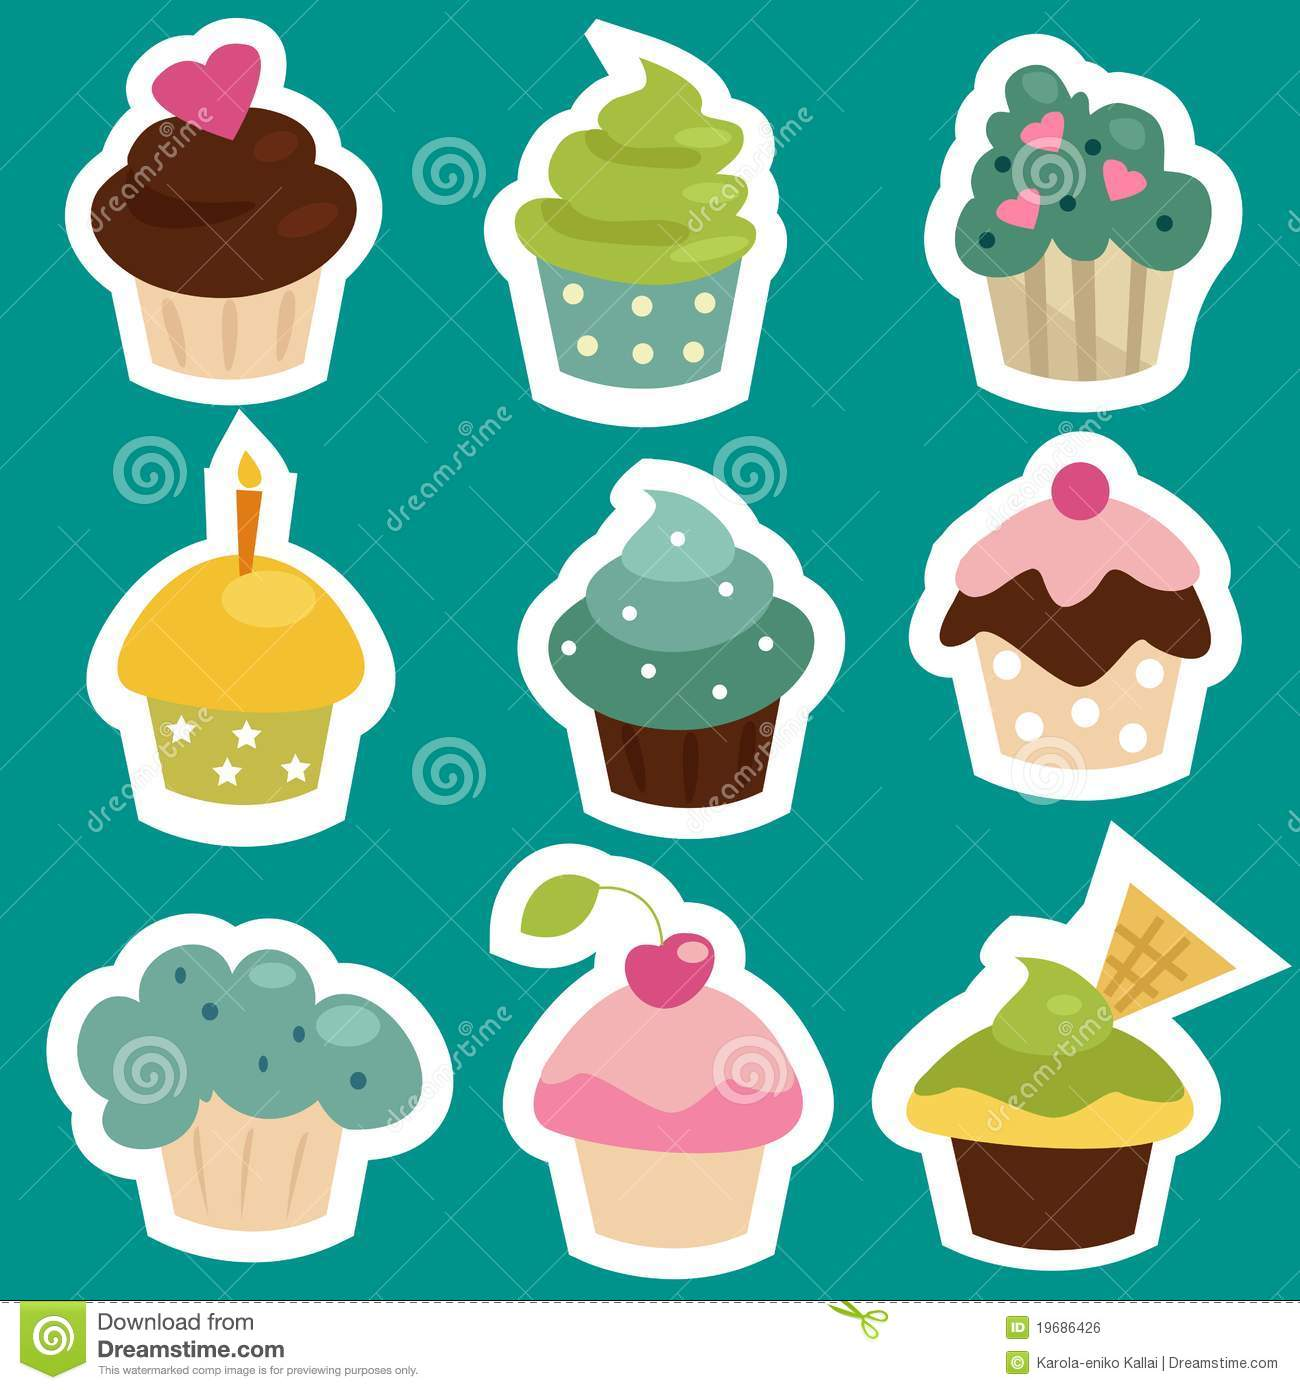 Cute Cupcake Stickers Royalty Free Stock Image - Image: 19686426